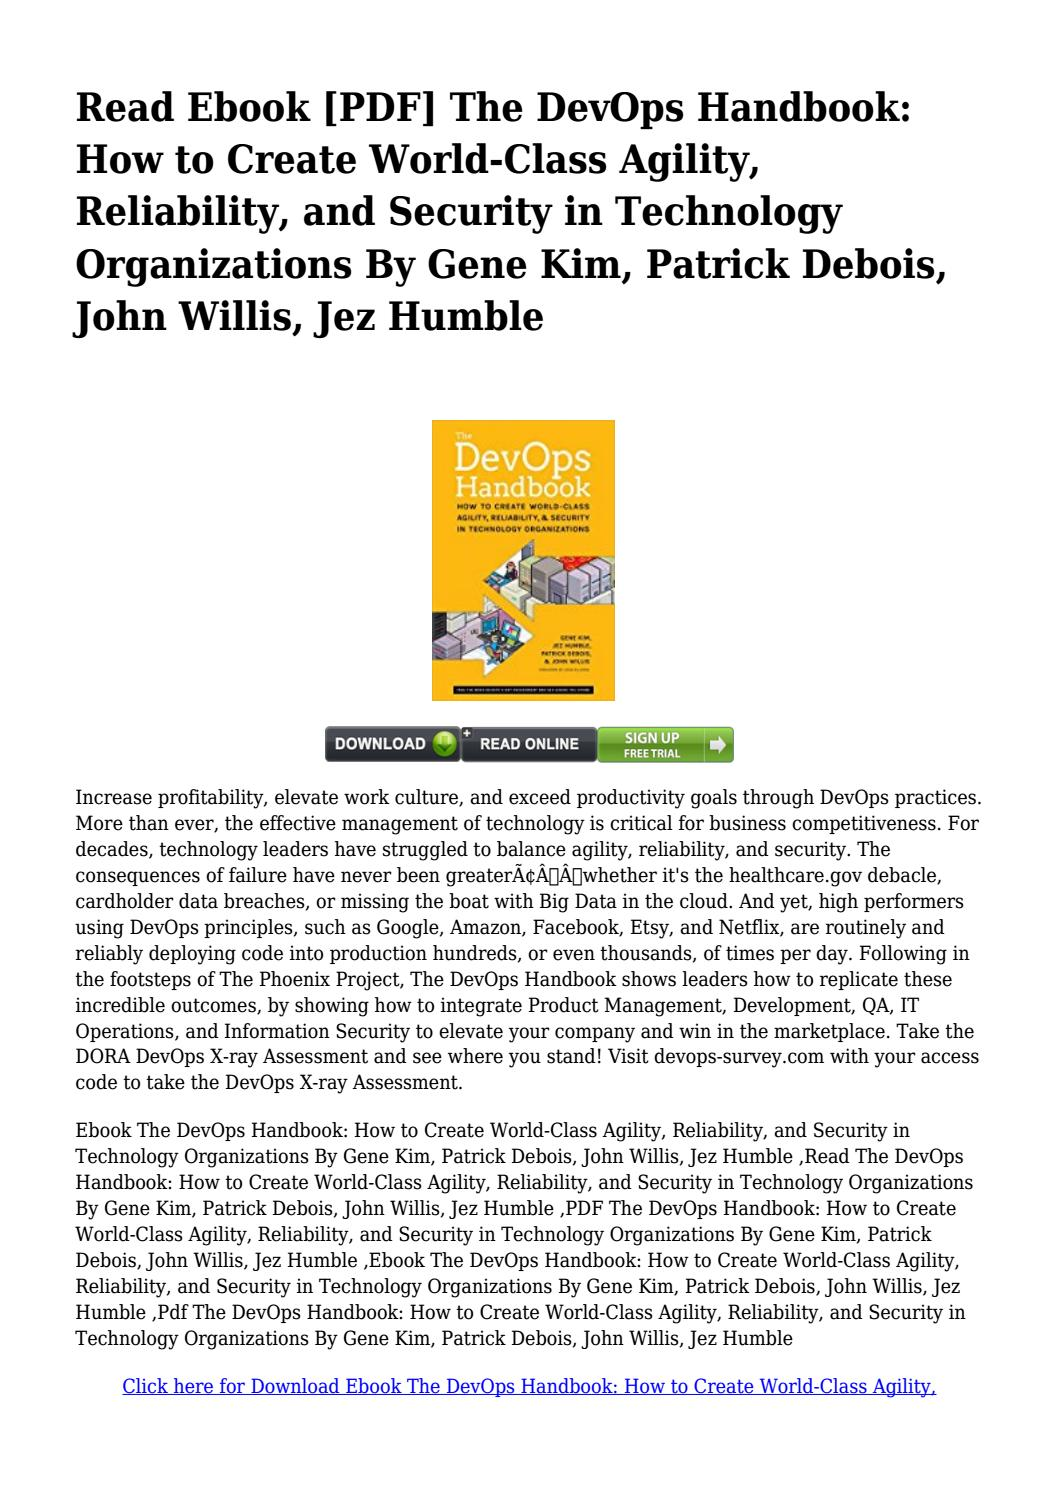 The Devops Handbook Pdf Free Download